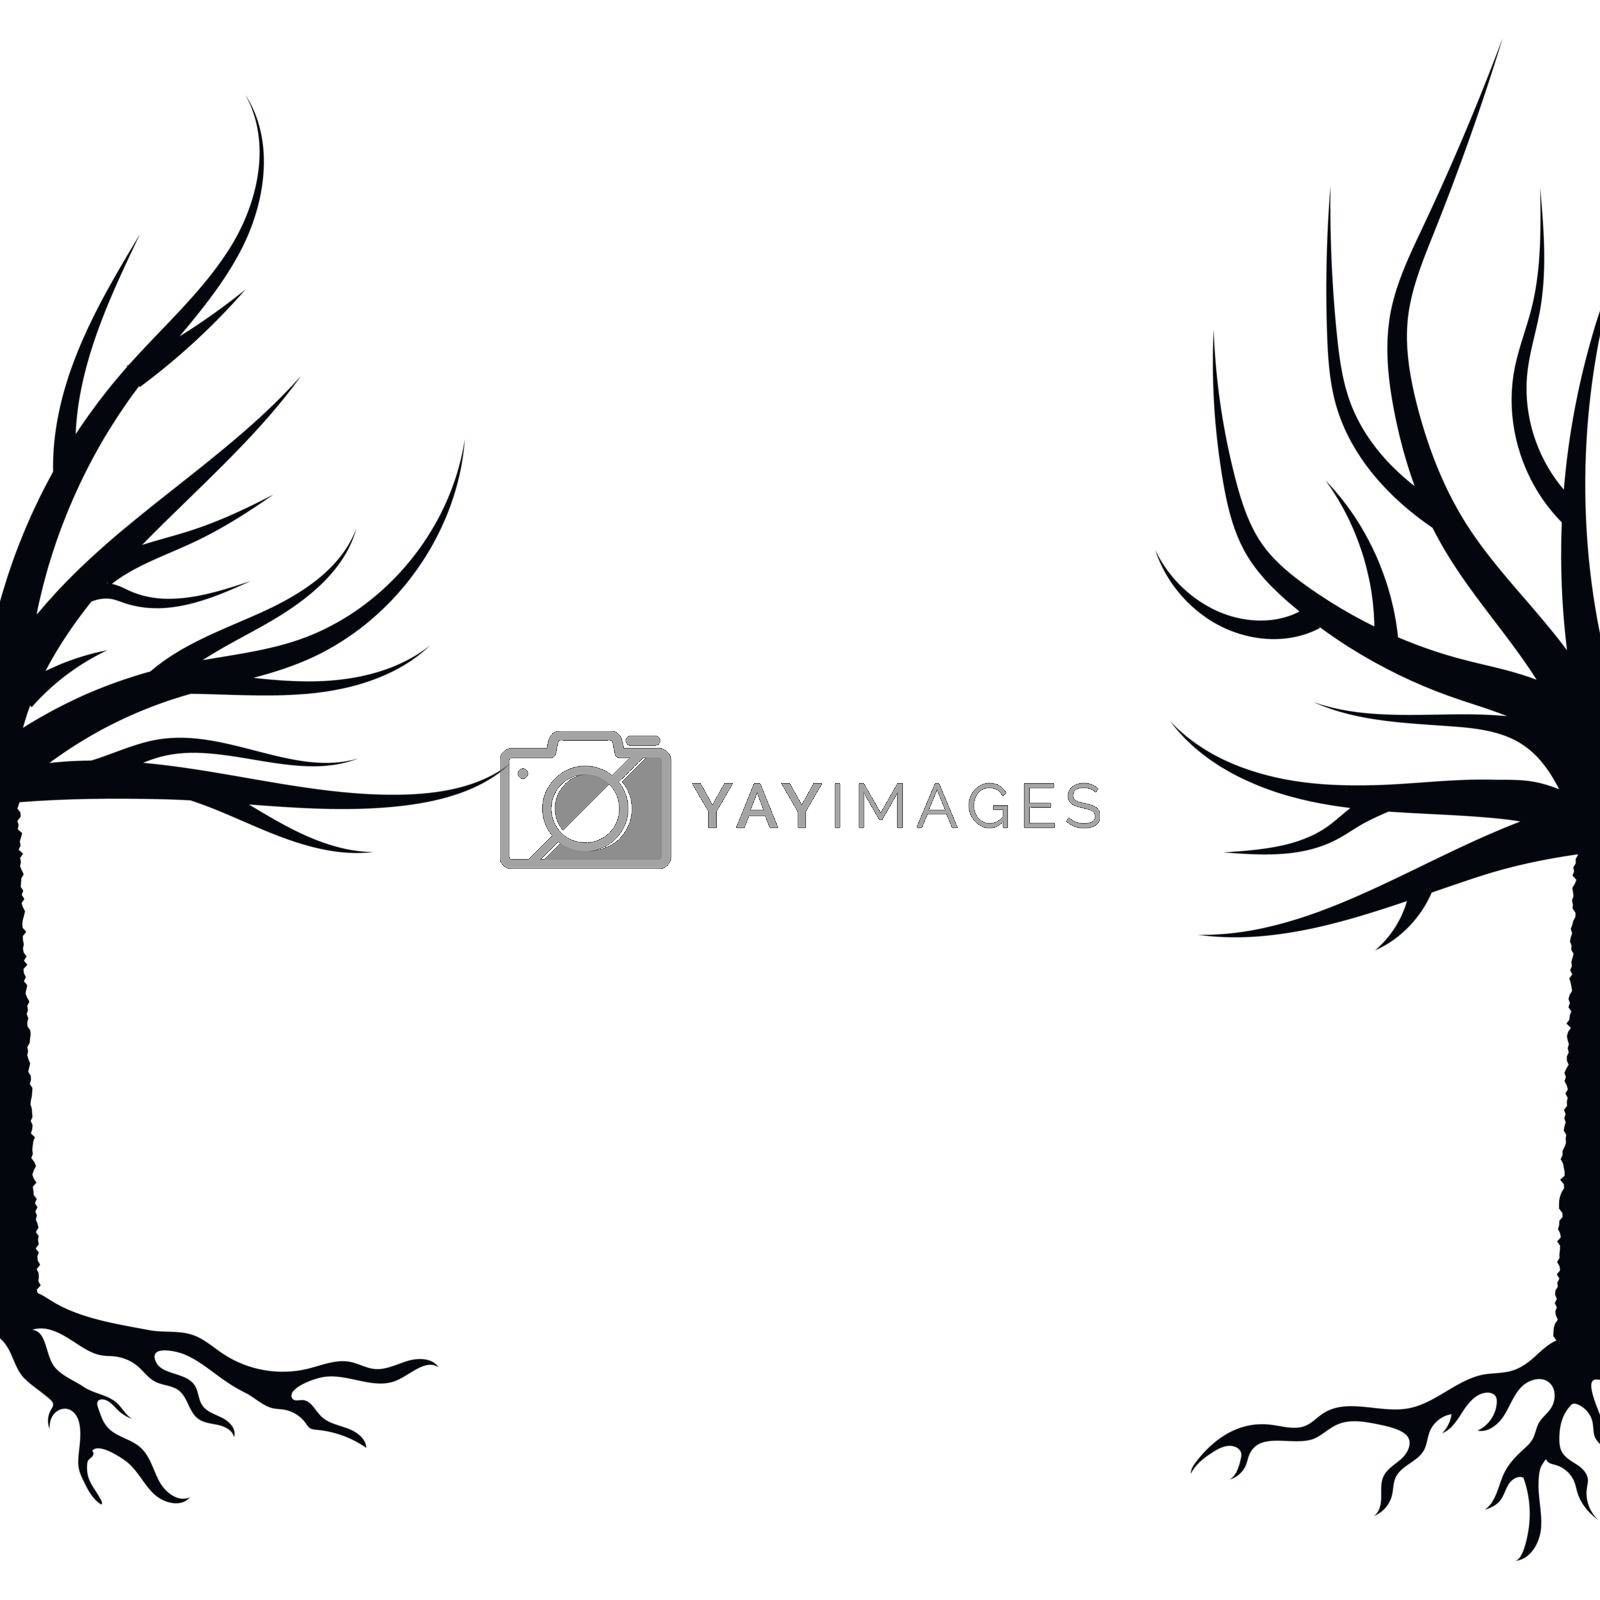 Royalty free image of Winter Trees Silhouettes by valeo5